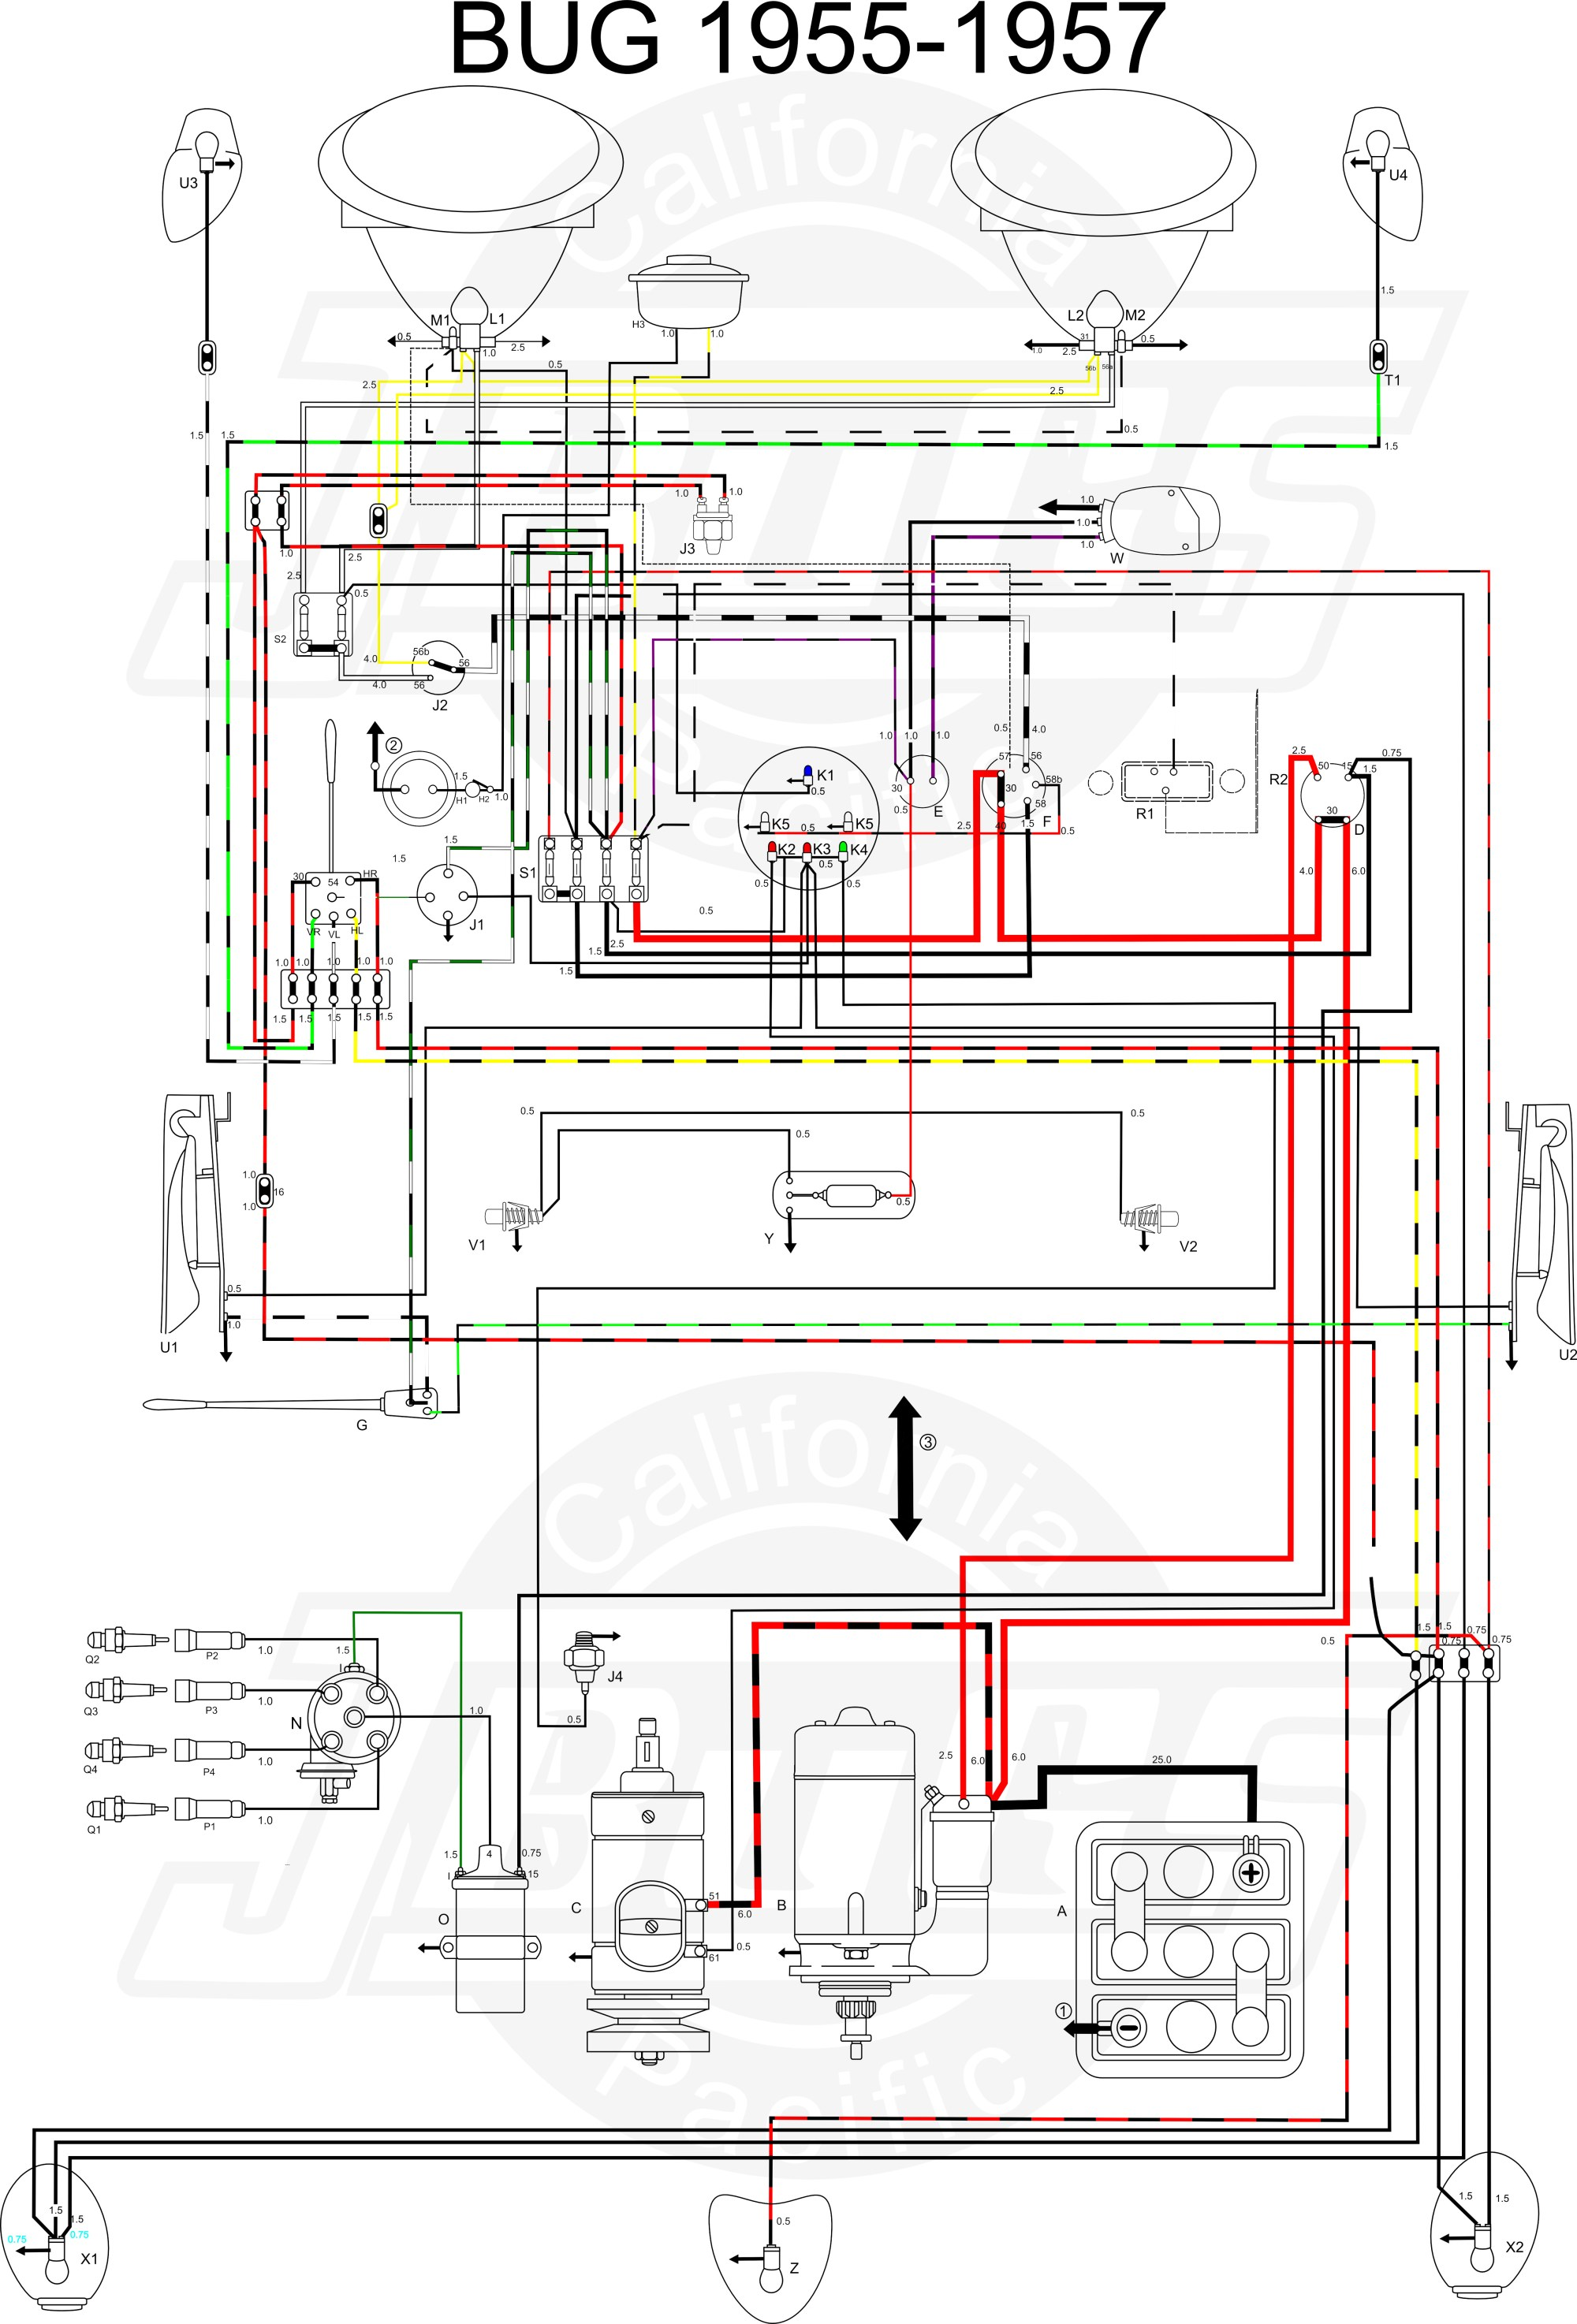 hight resolution of 57 chevy wiper wiring blog wiring diagram 57 chevy wiper wiring